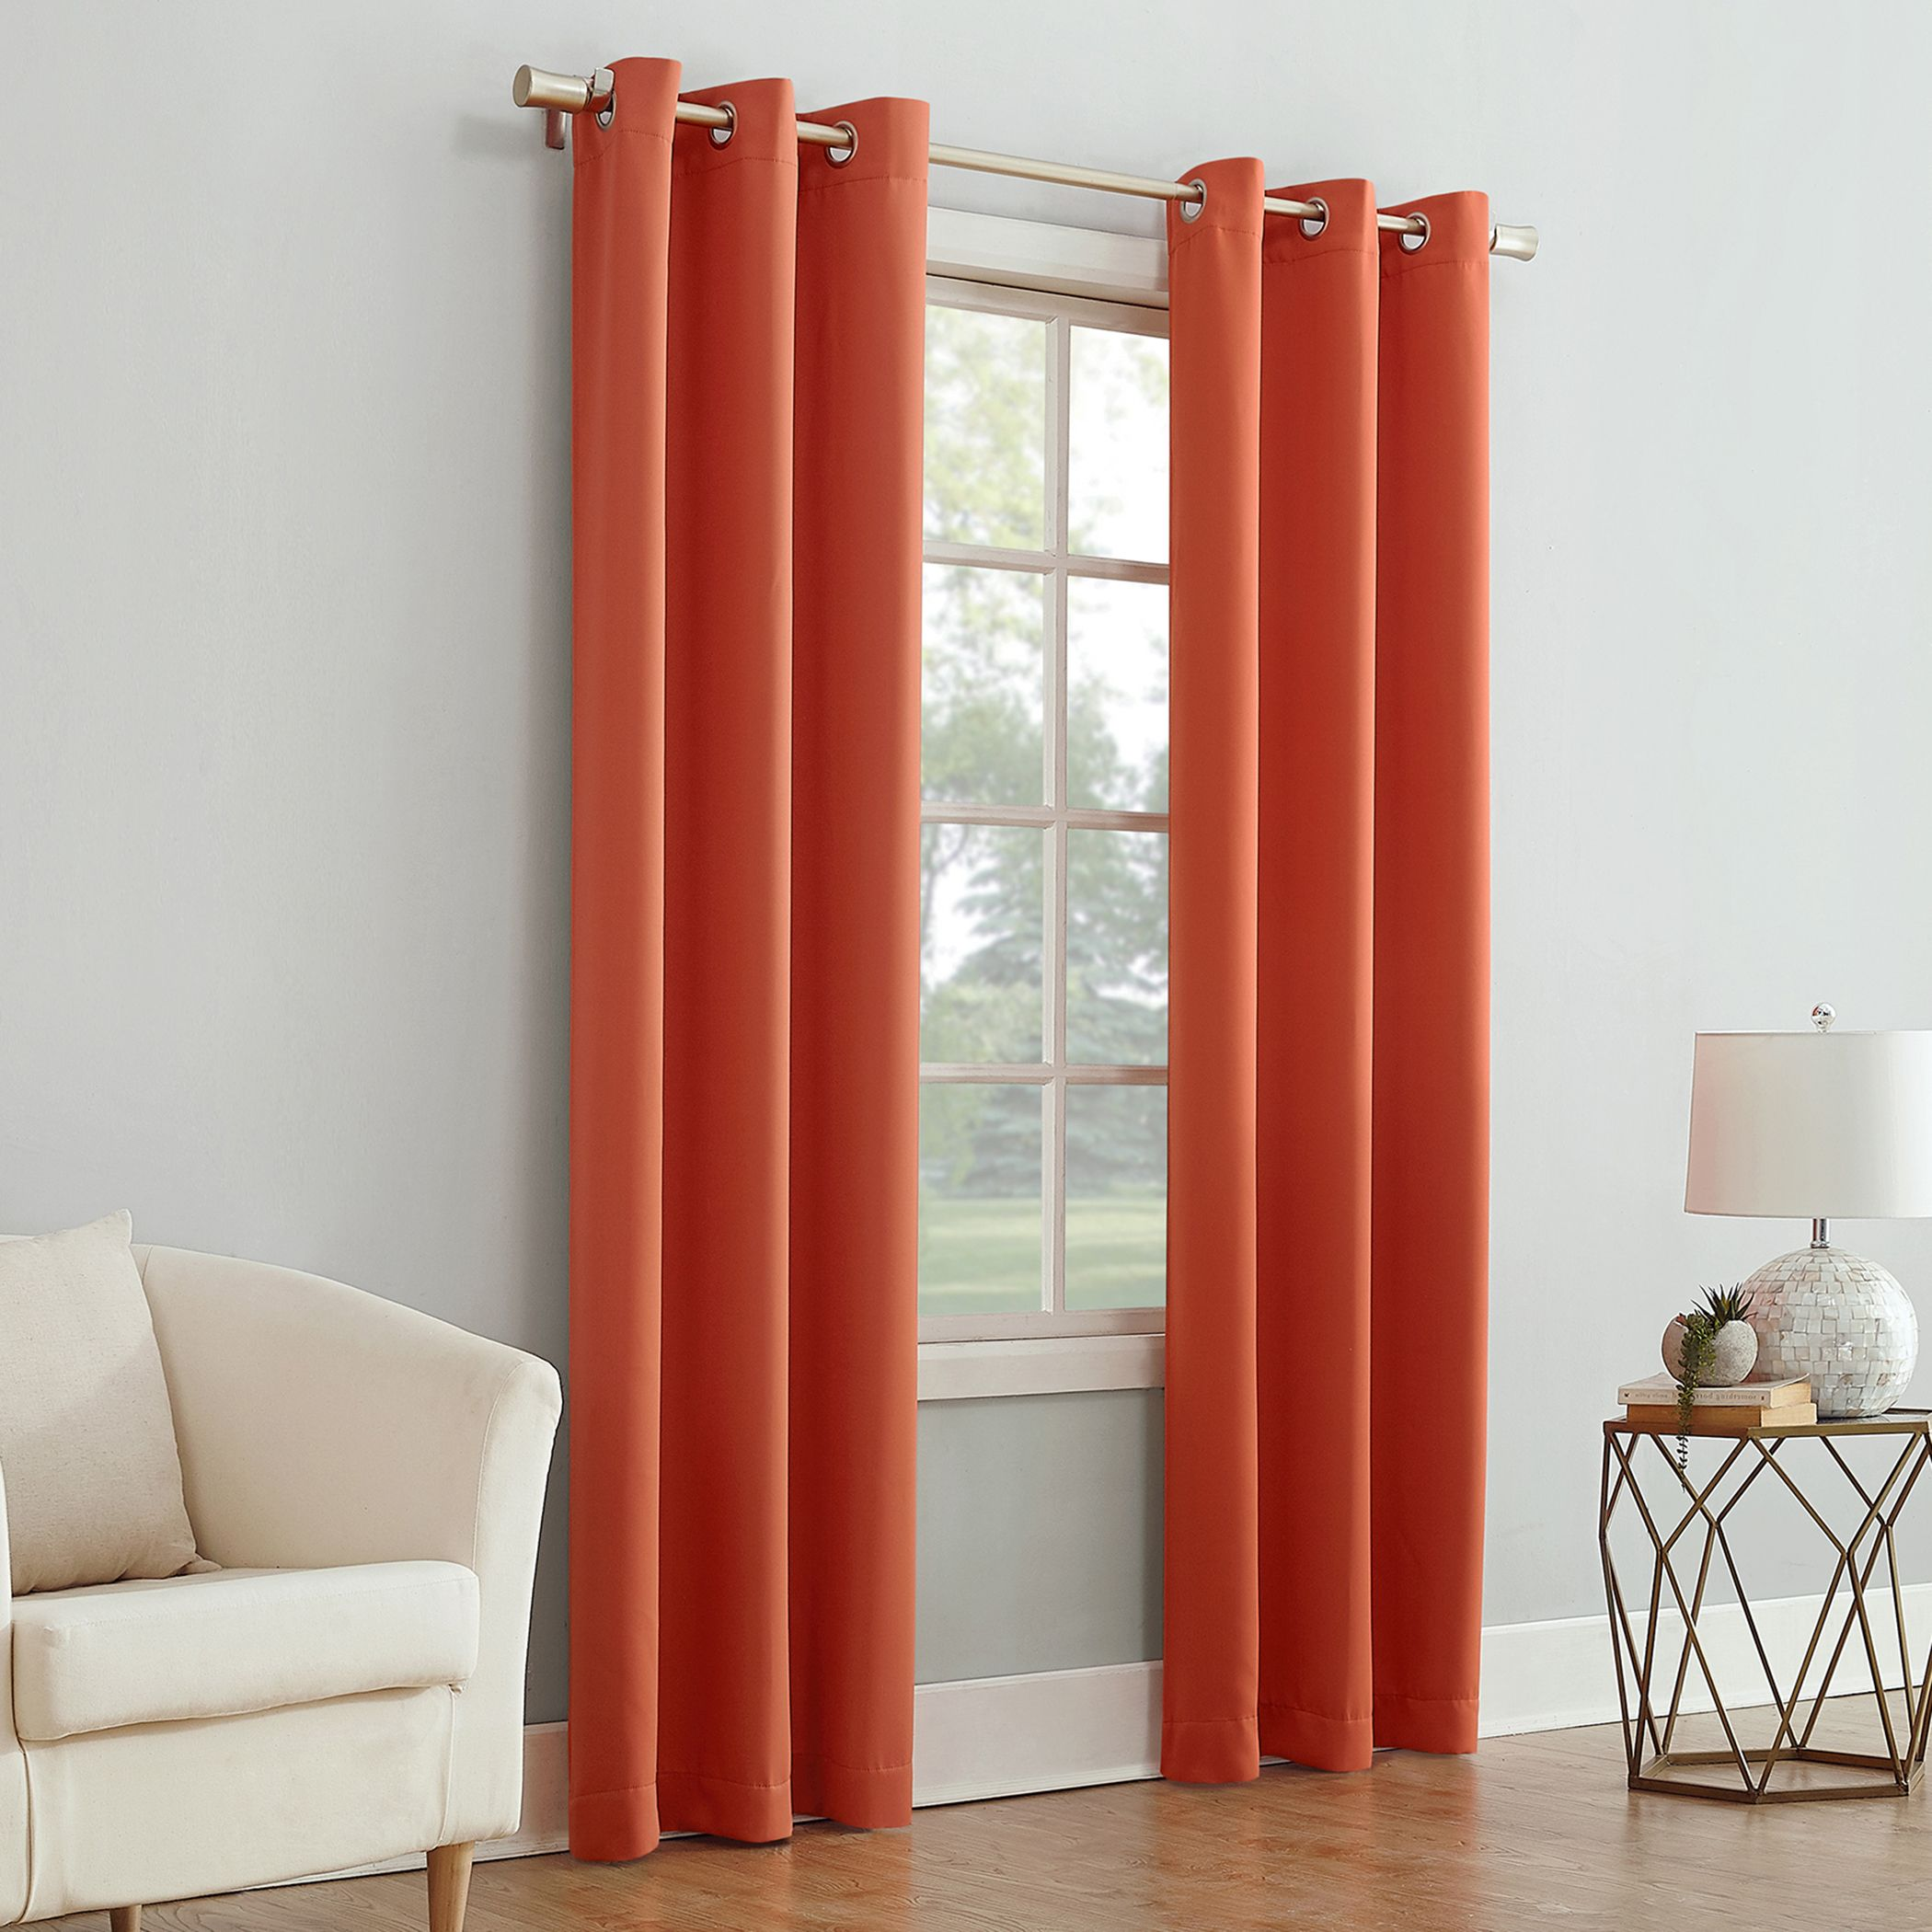 Home Panel Curtains Curtains Girls Bedroom Curtains